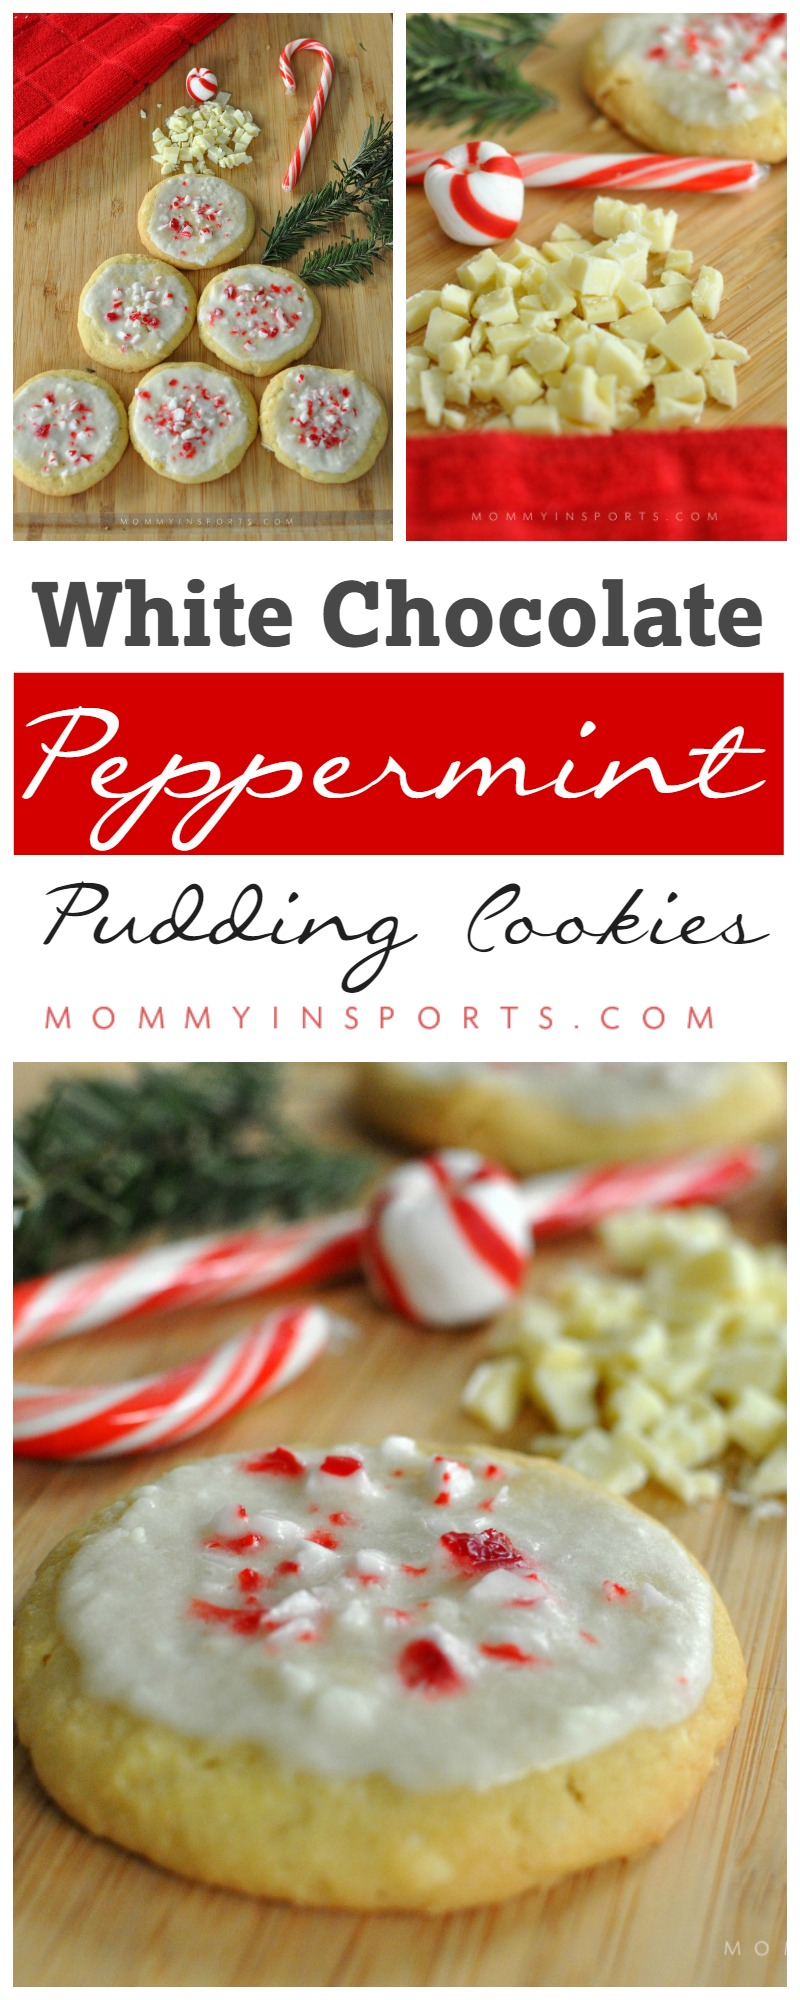 Looking for a twist on traditional Christmas cookies? Try these delicious White Chocolate Peppermint Pudding Cookies!